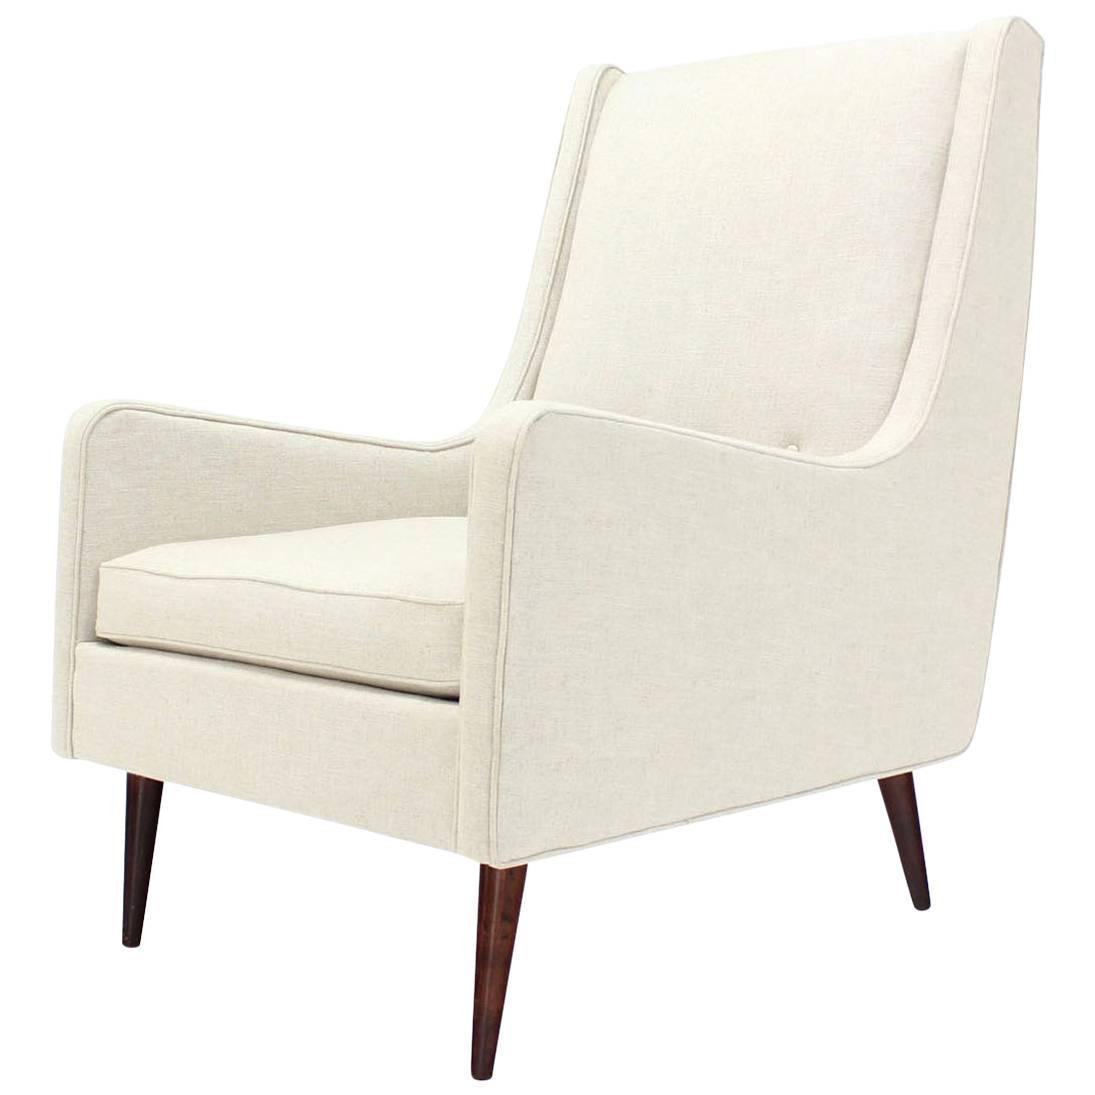 white linen chair covers for sale dog high new upholstery mid century modern lounge